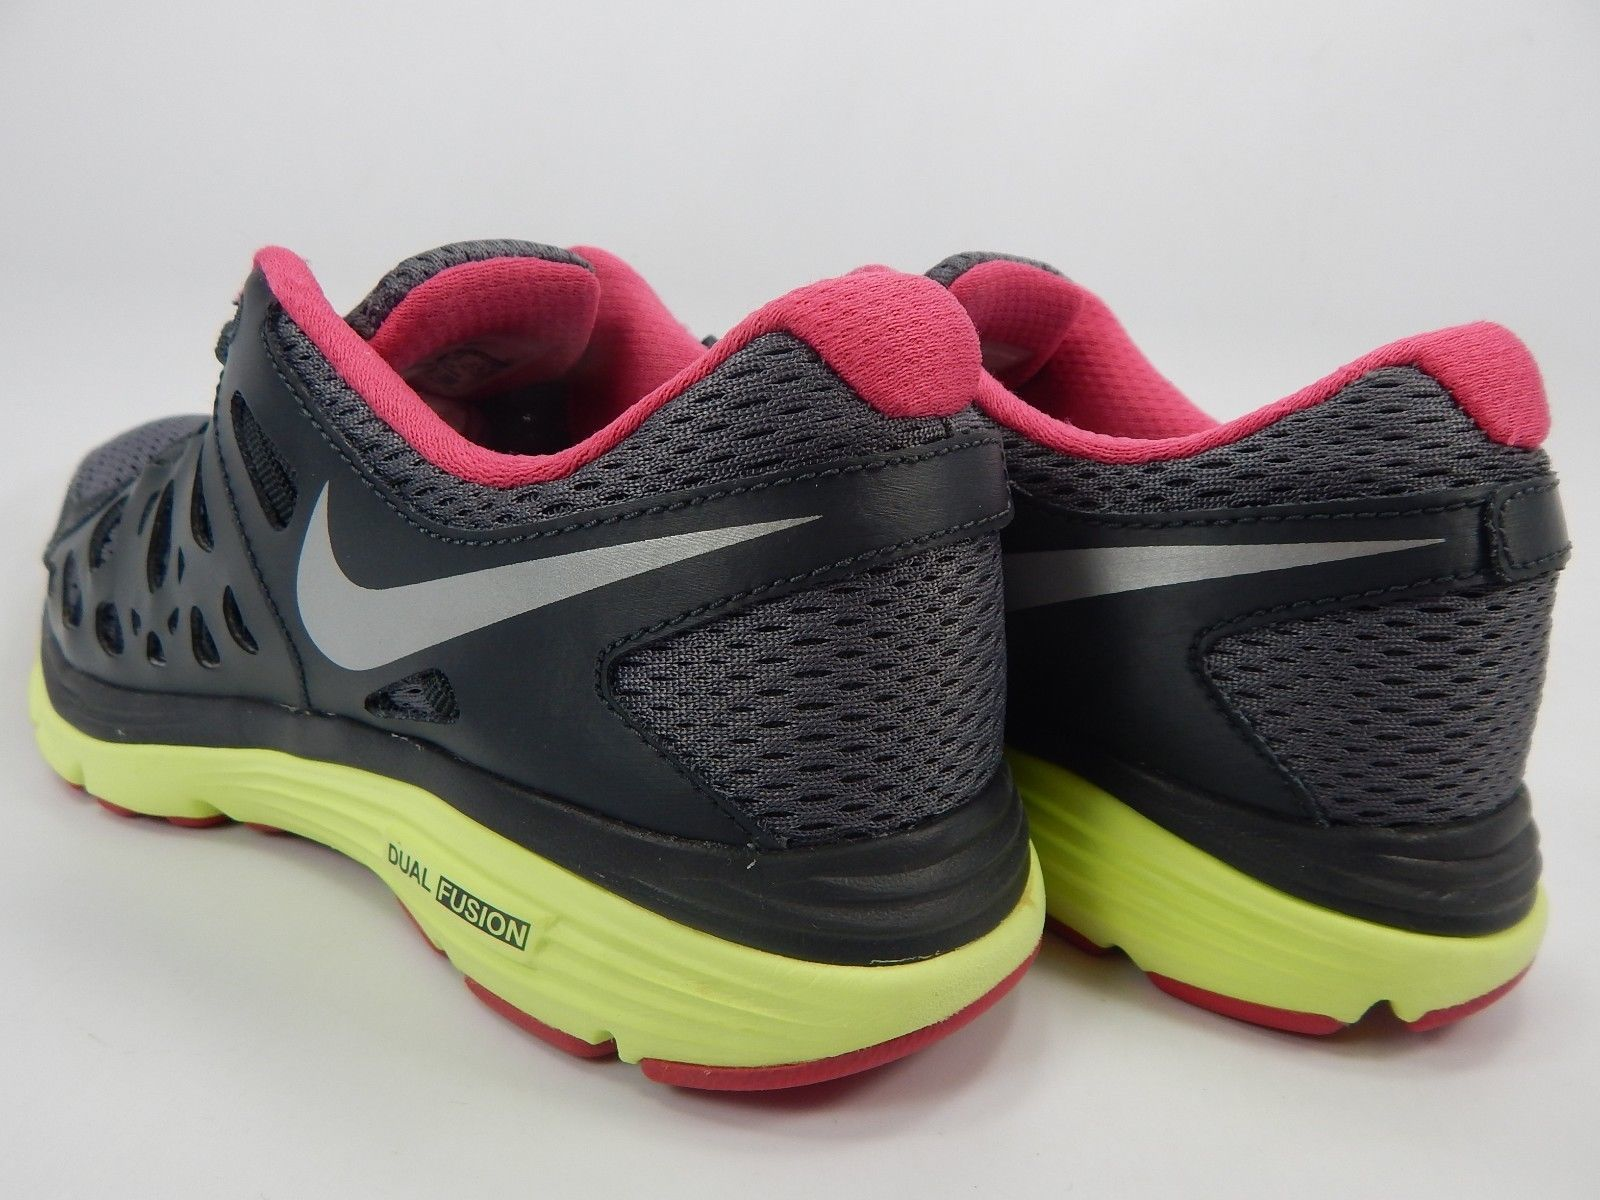 Nike Dual Fusion Run 2 Size 7.5 M (B) EU 38.5 Women's Running Shoes 595564-009